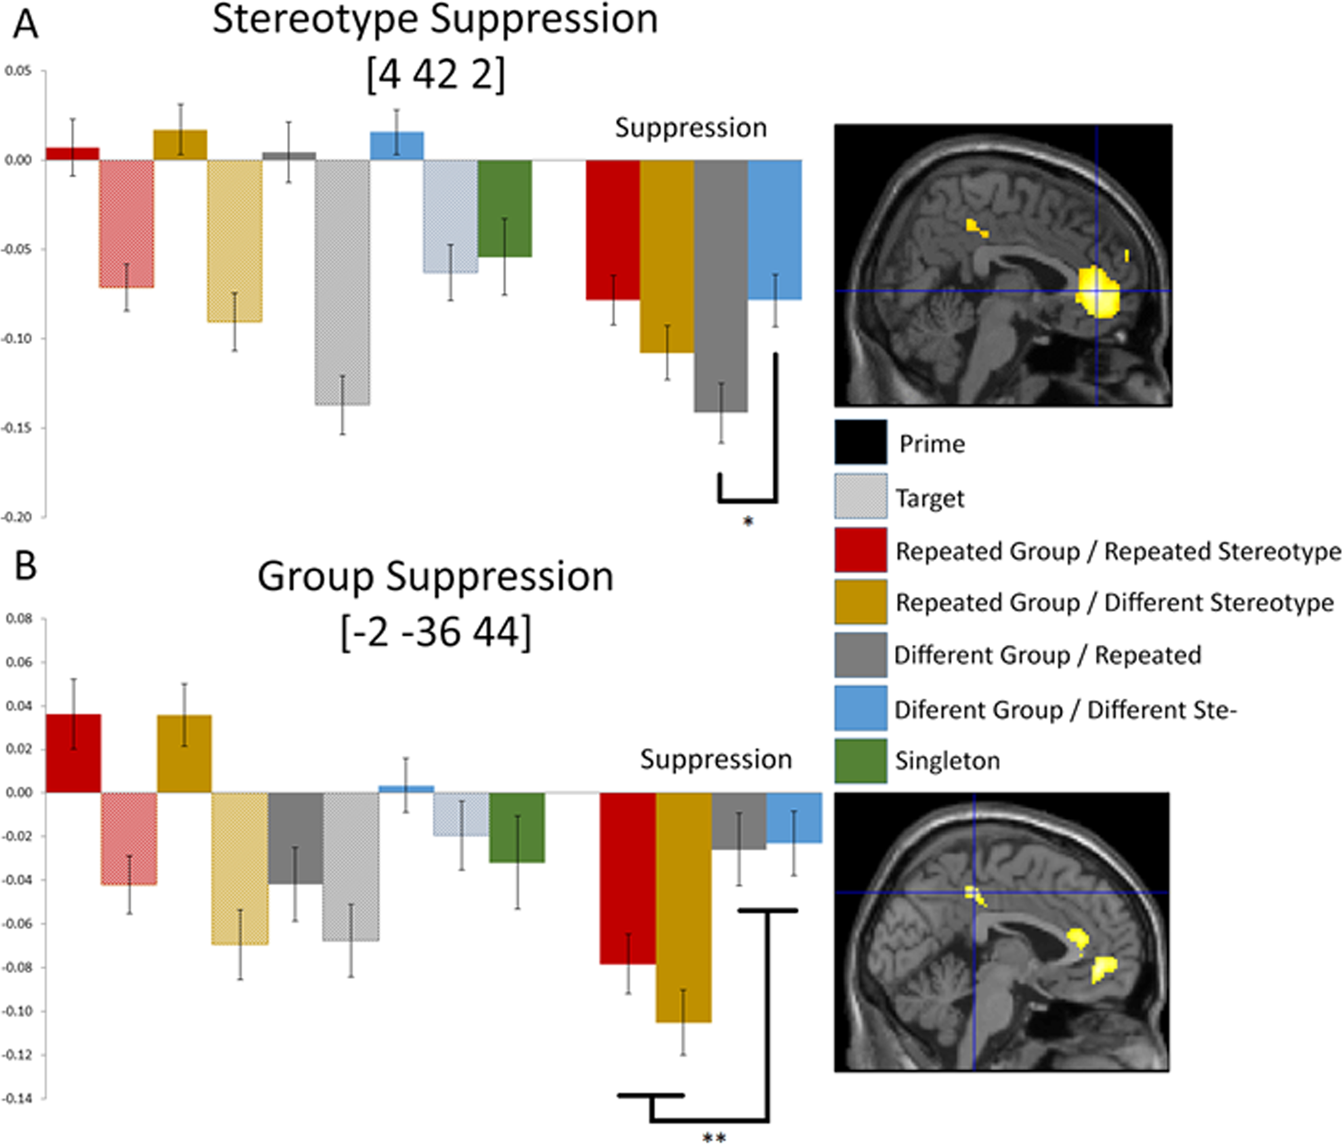 Neural representations of Groups and Stereotypes using fMRI